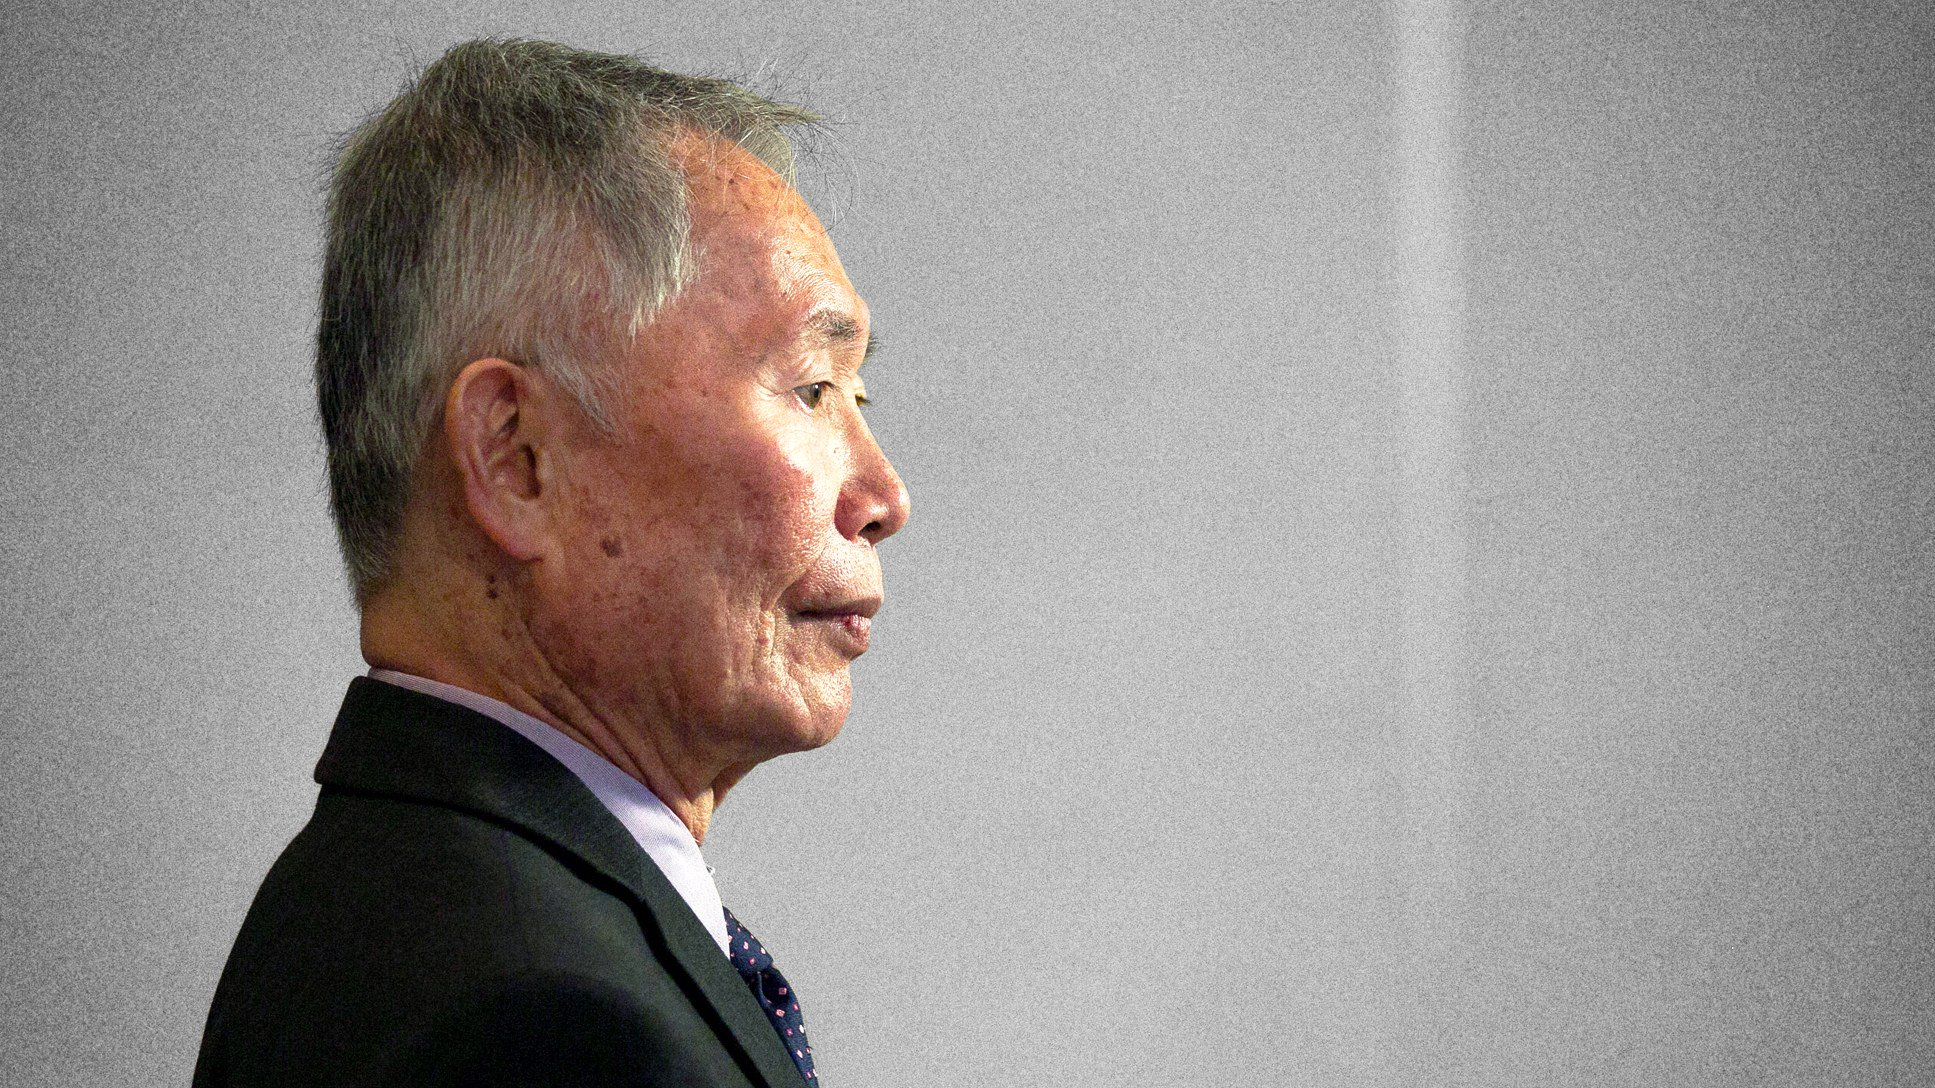 George Takei says sexual assault allegations are a Russian conspiracy https://t.co/Yl9VqrNIay https://t.co/DuZQAcQBMS